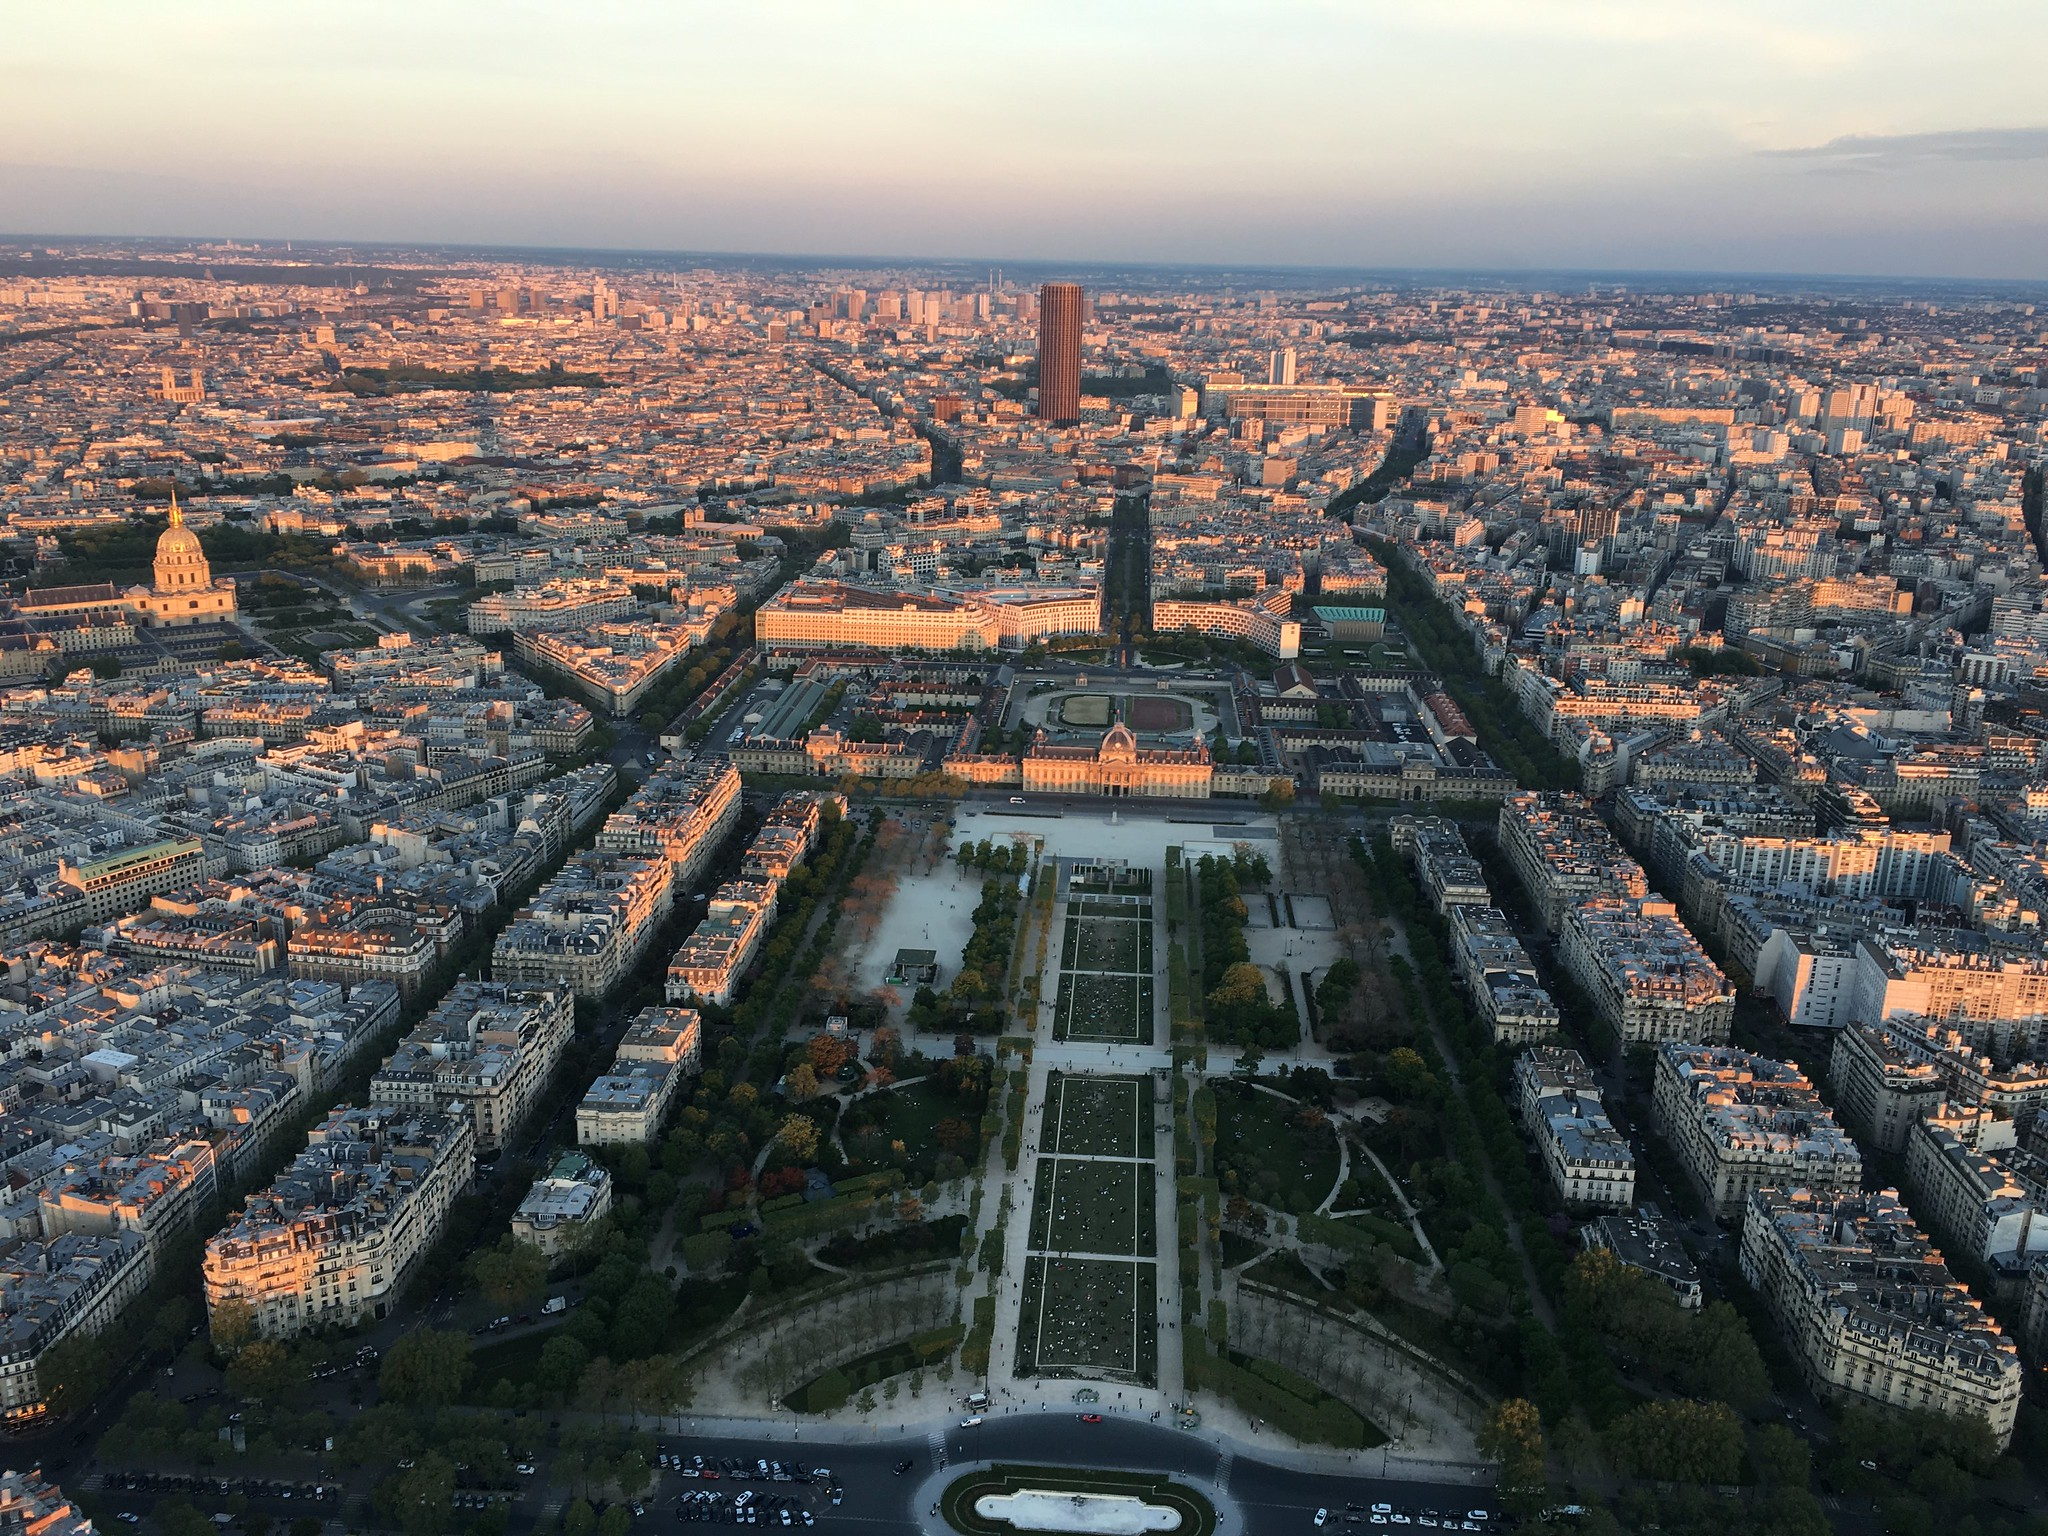 Paris - Eiffel Tower - Sunset Over Paris - Champ de Mars